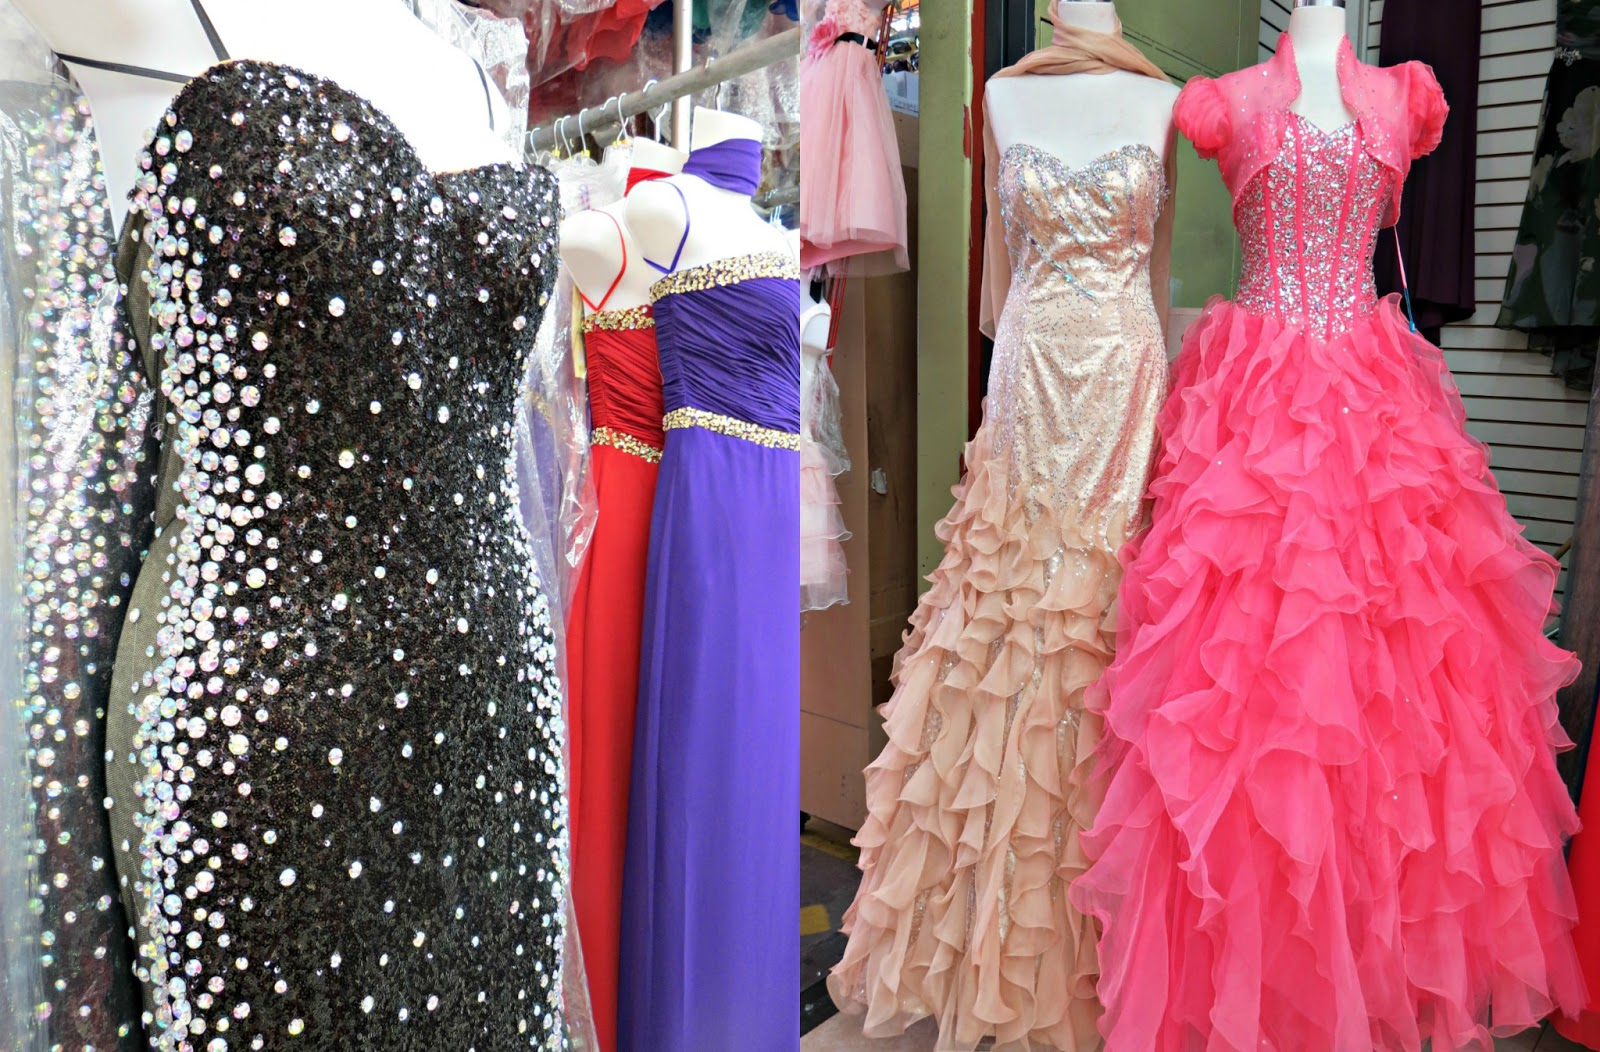 Prom dress stores in los angeles cocktail dresses 2016 for Wedding dress stores downtown los angeles